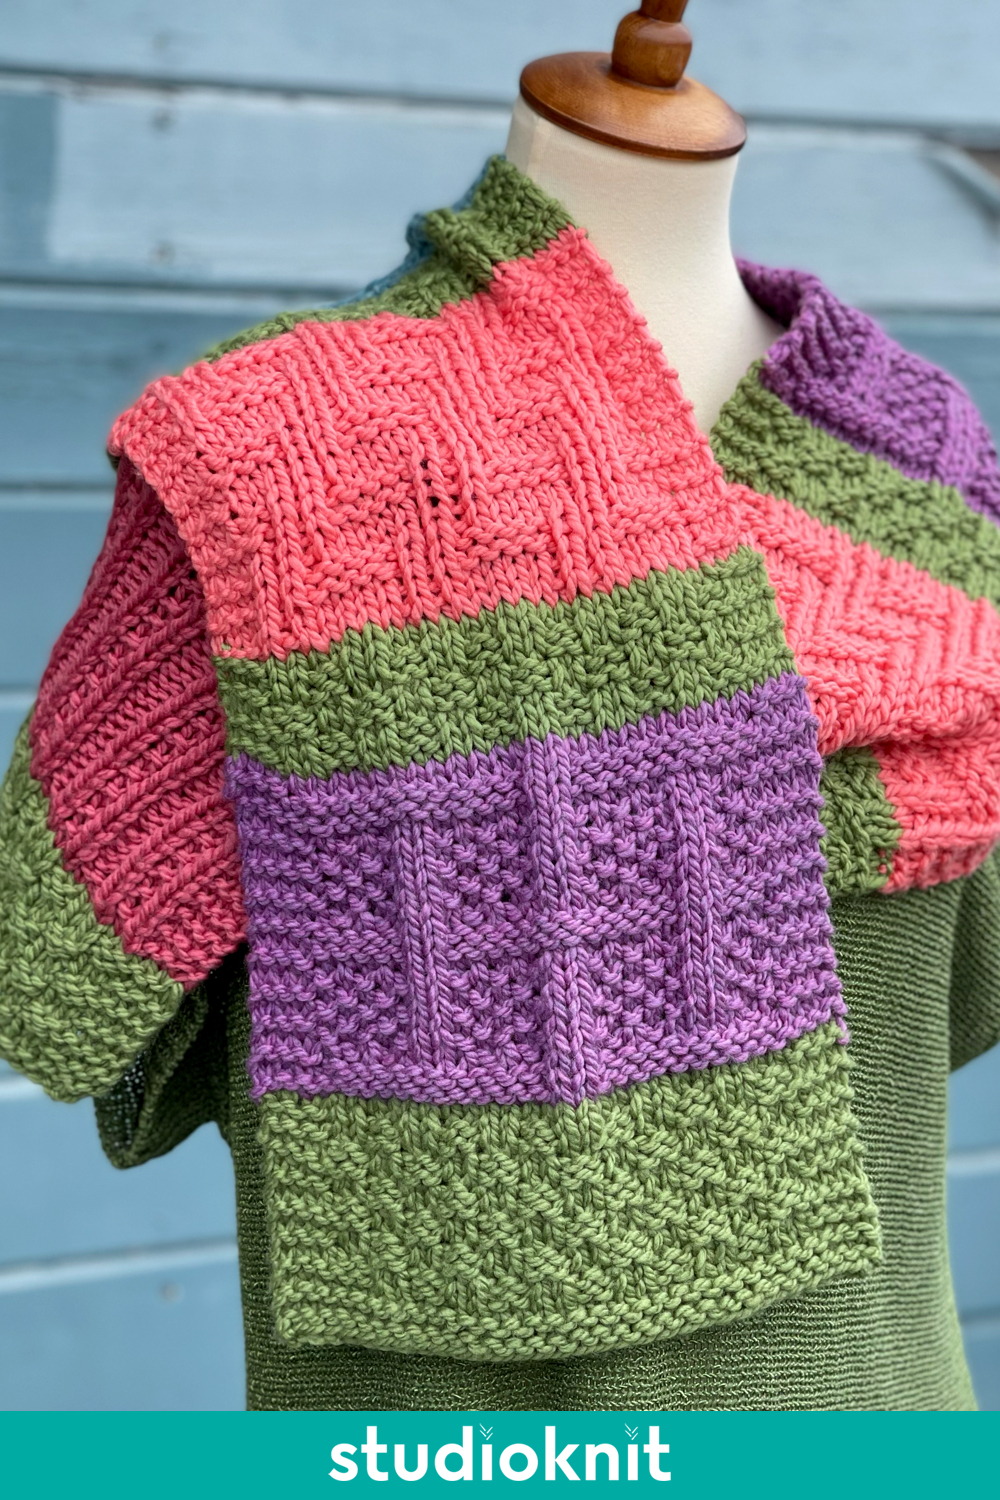 Color Block Knitted Scarf with Lattice Seed Stitch on manequin.